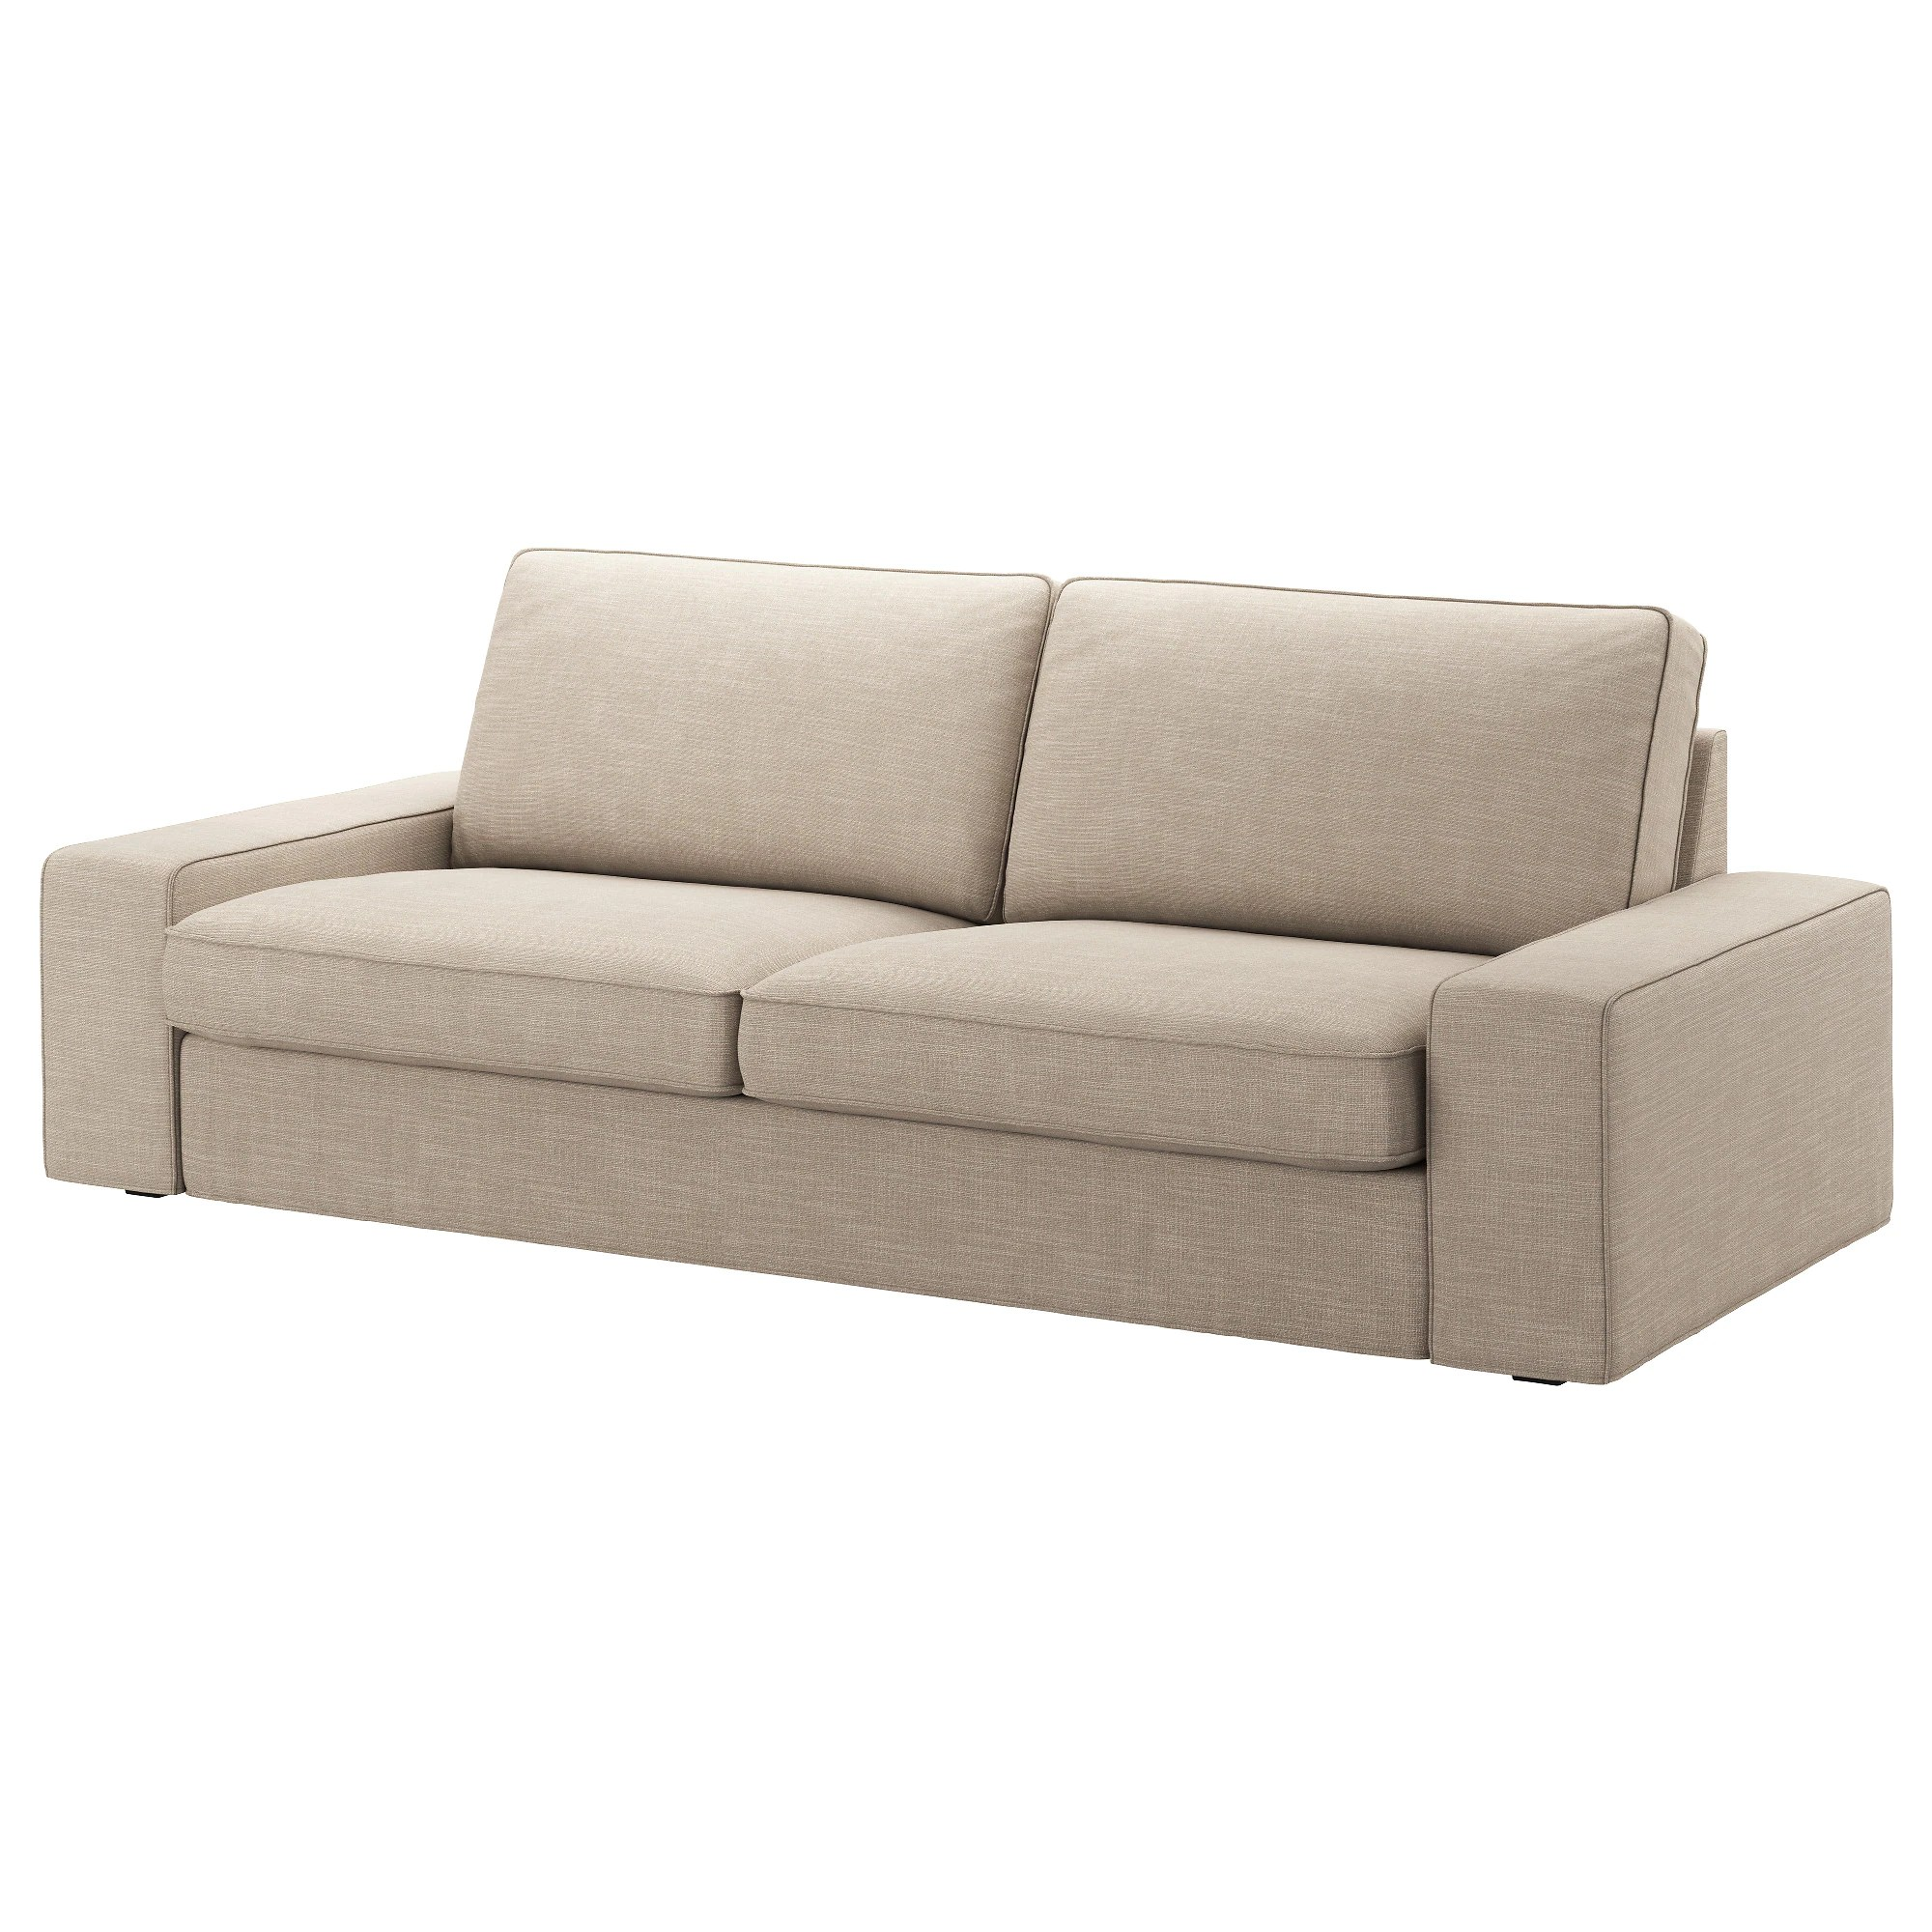 Ikea Kivik Sofa Kivik Sofa Orrsta Light Gray